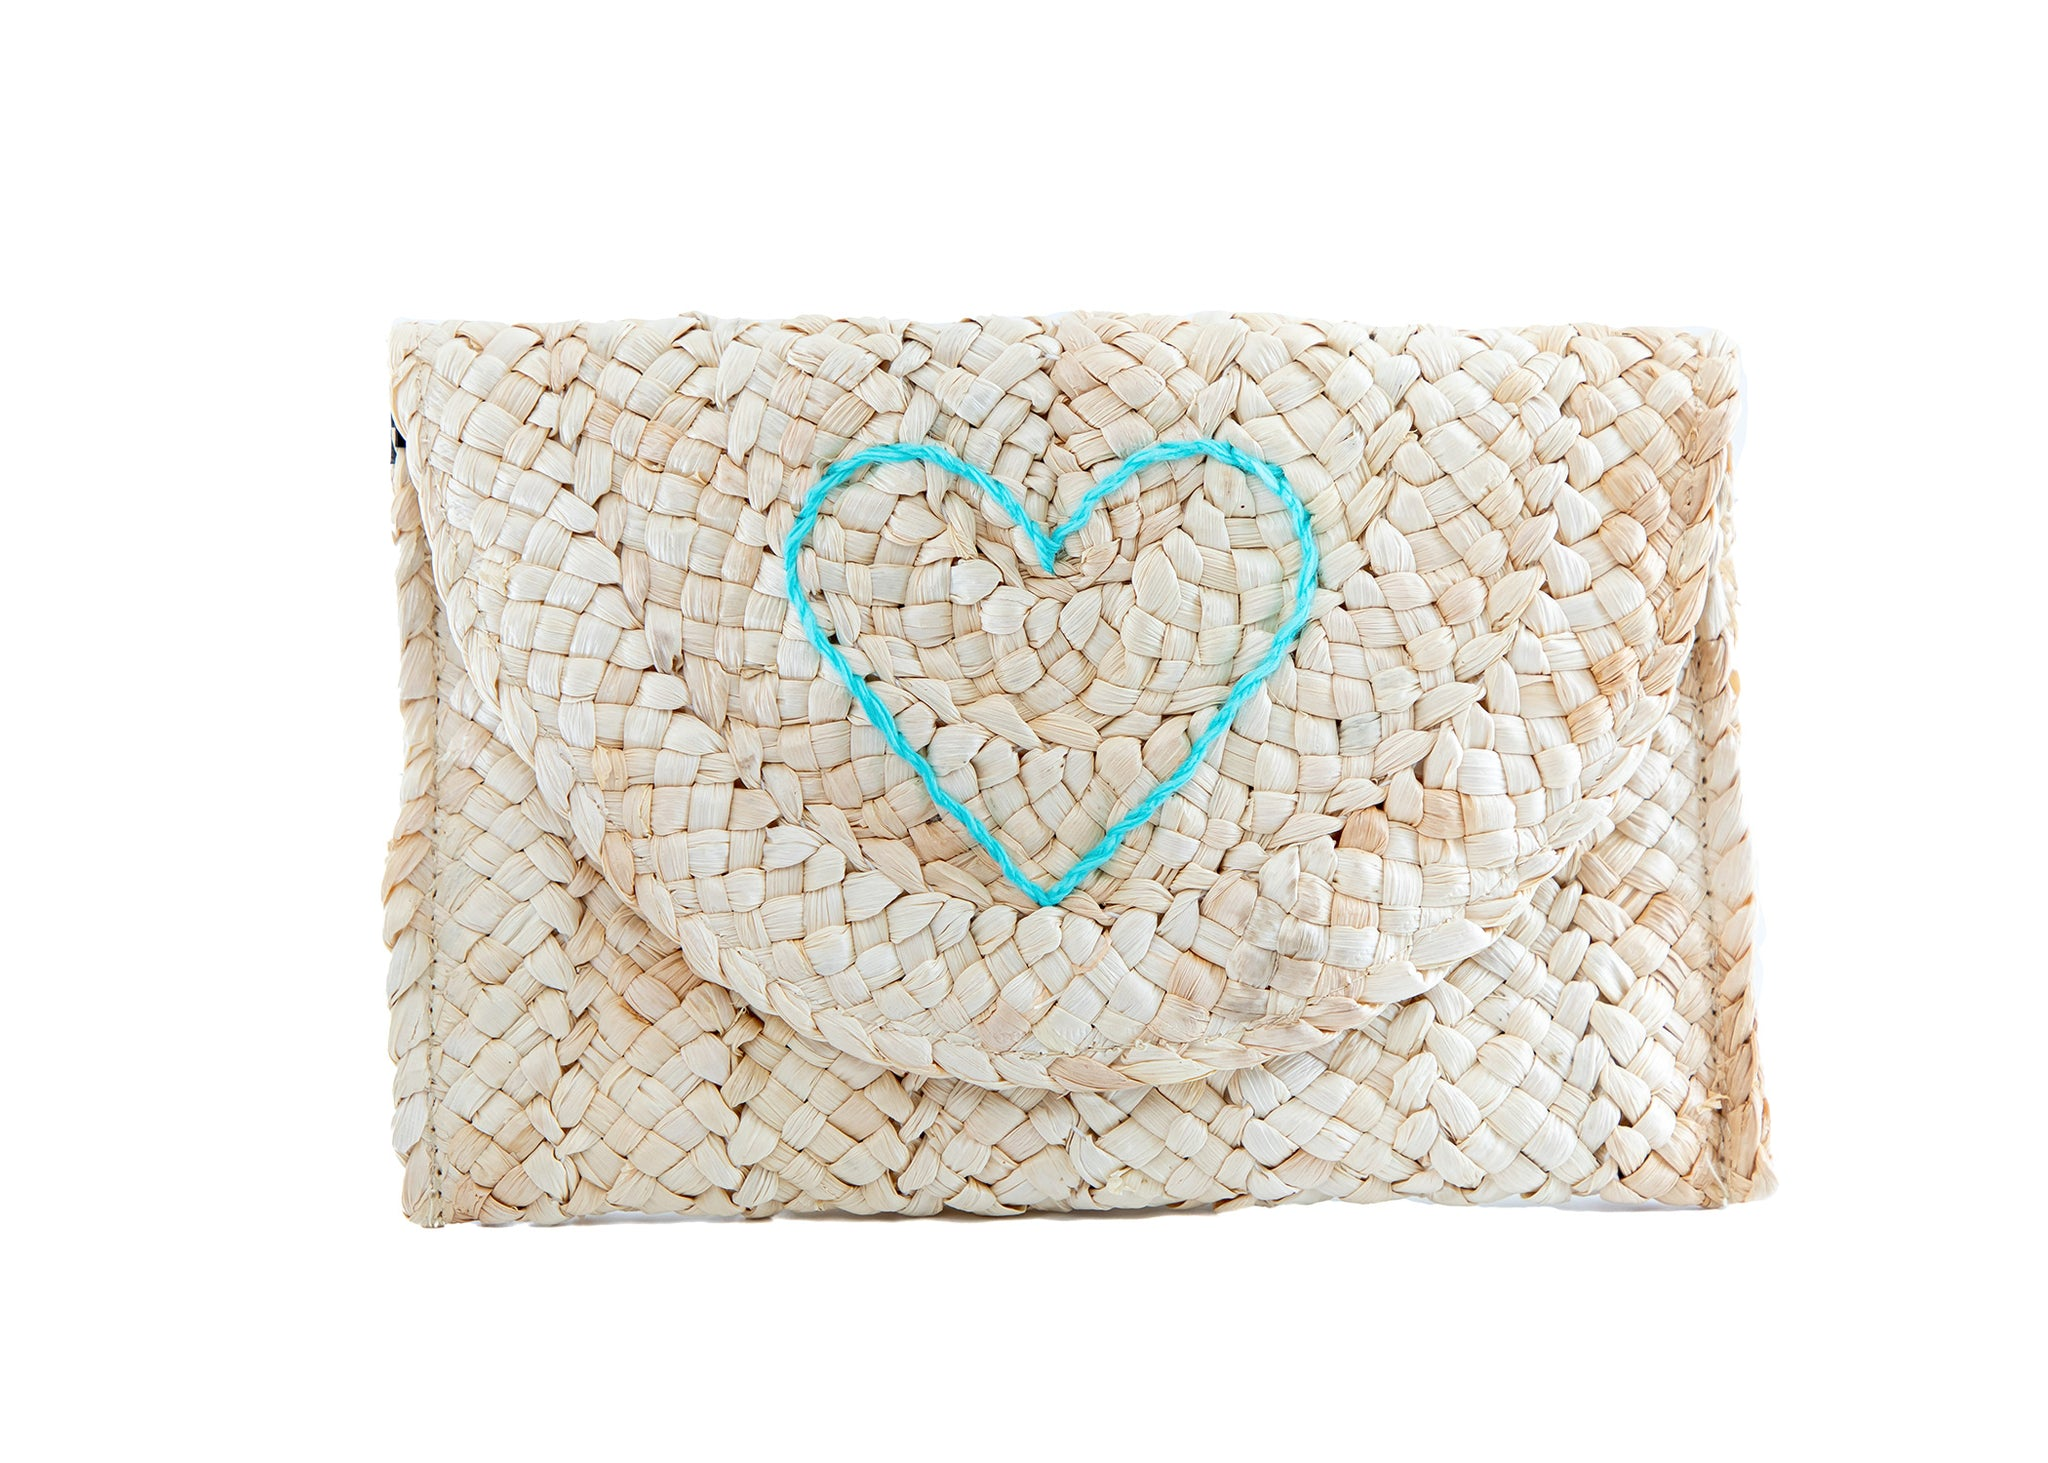 capri clutch - happy heart - turquoise